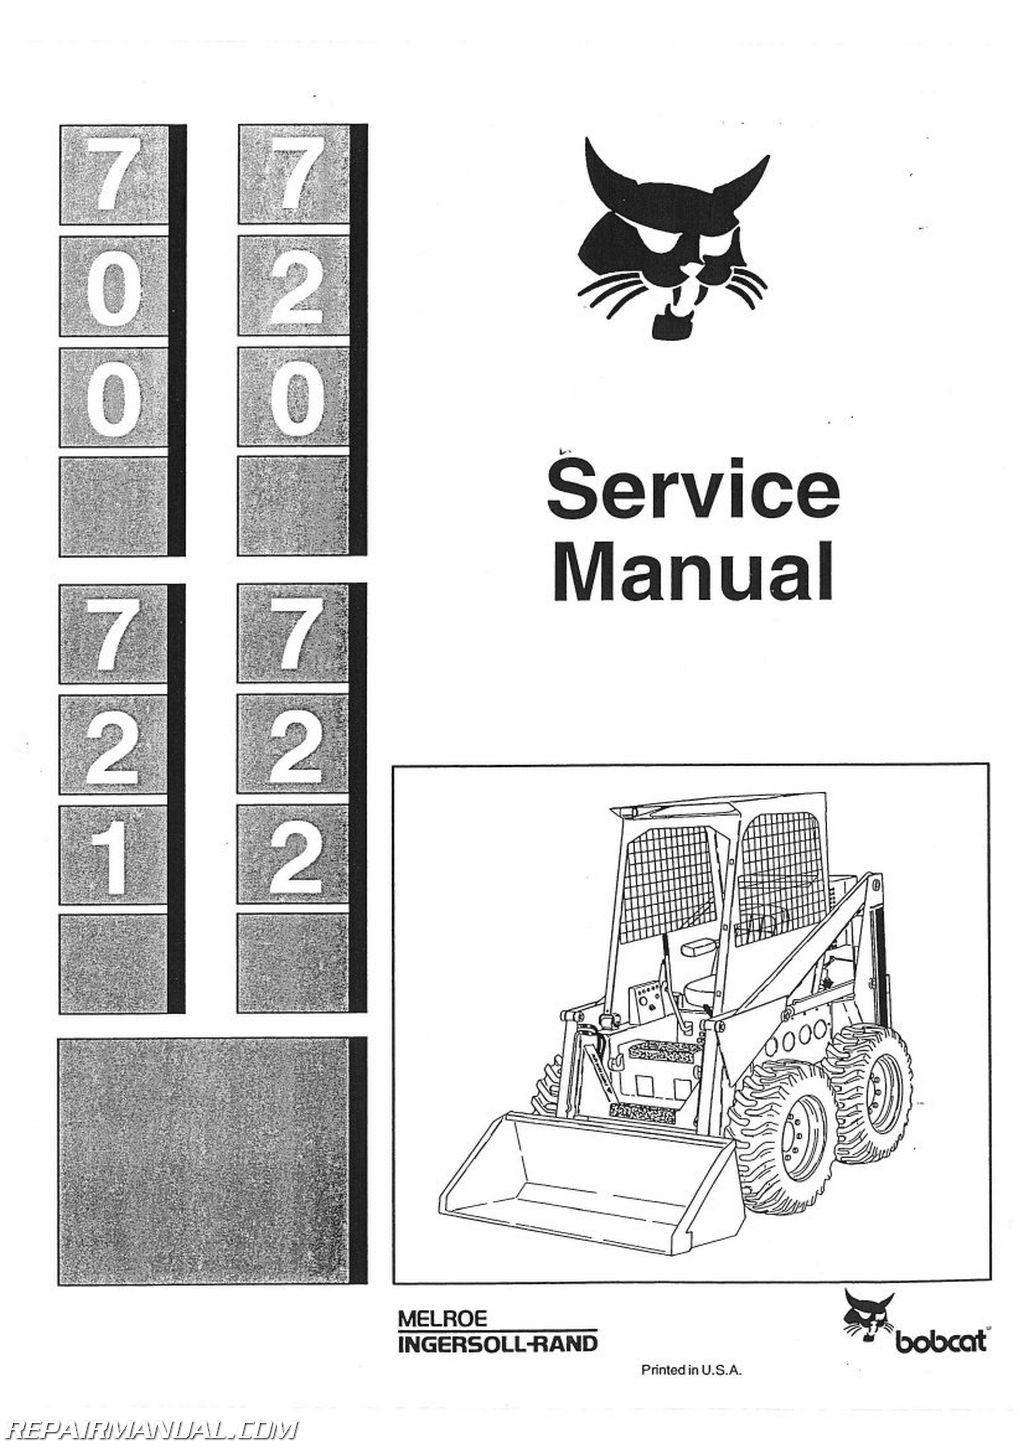 hight resolution of bobcat 700 720 721 722 skid steer service manual jpg